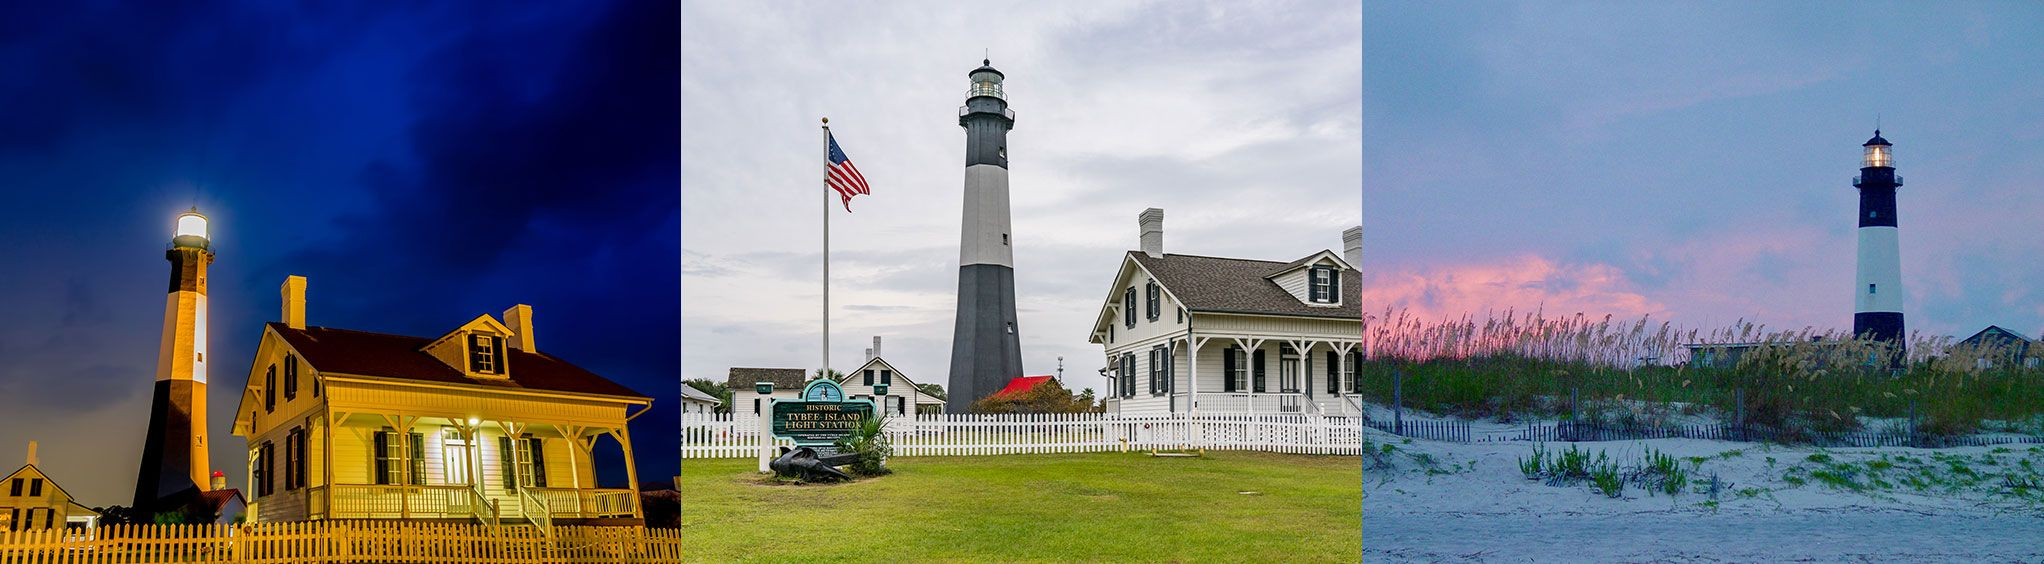 Tybee Island Lighthouse near Savannah, GA